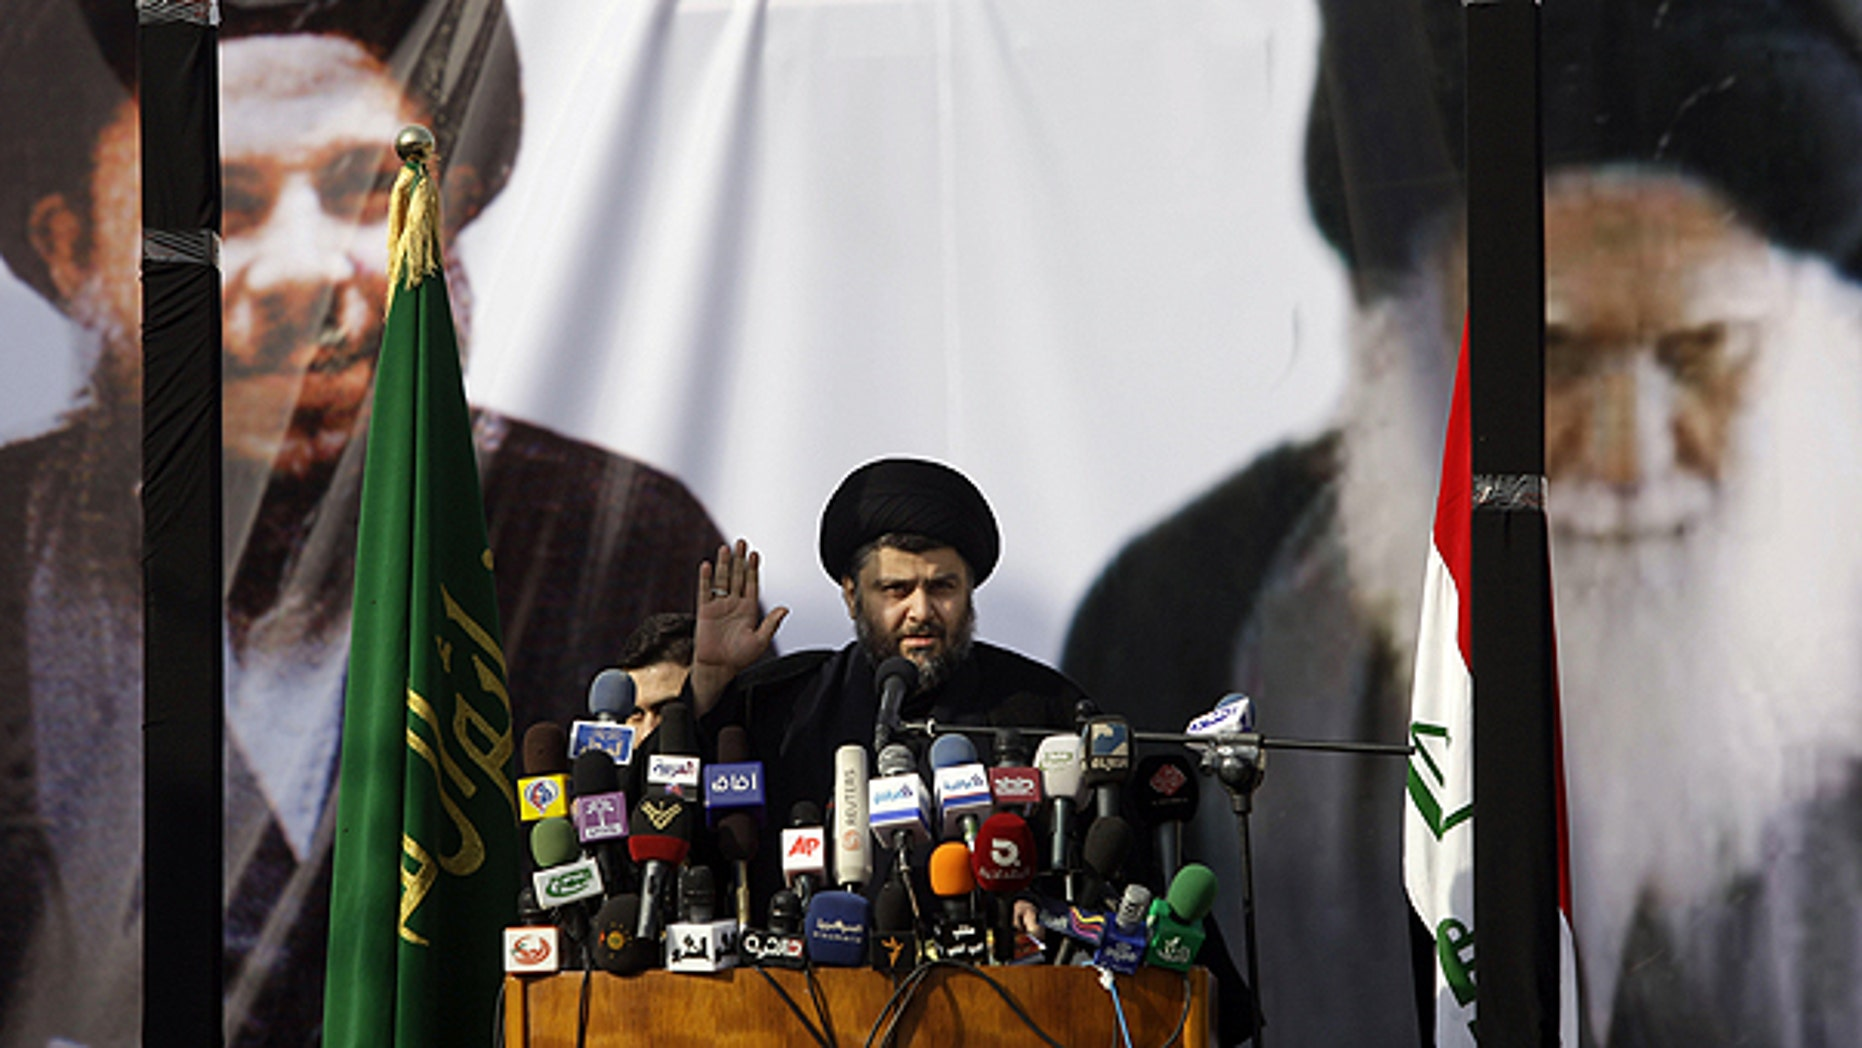 Jan. 8: Shiite cleric Muqtada al-Sadr gestures during his first public appearance since returning from nearly four years of self-imposed exile in Najaf, south of Baghdad, Iraq.